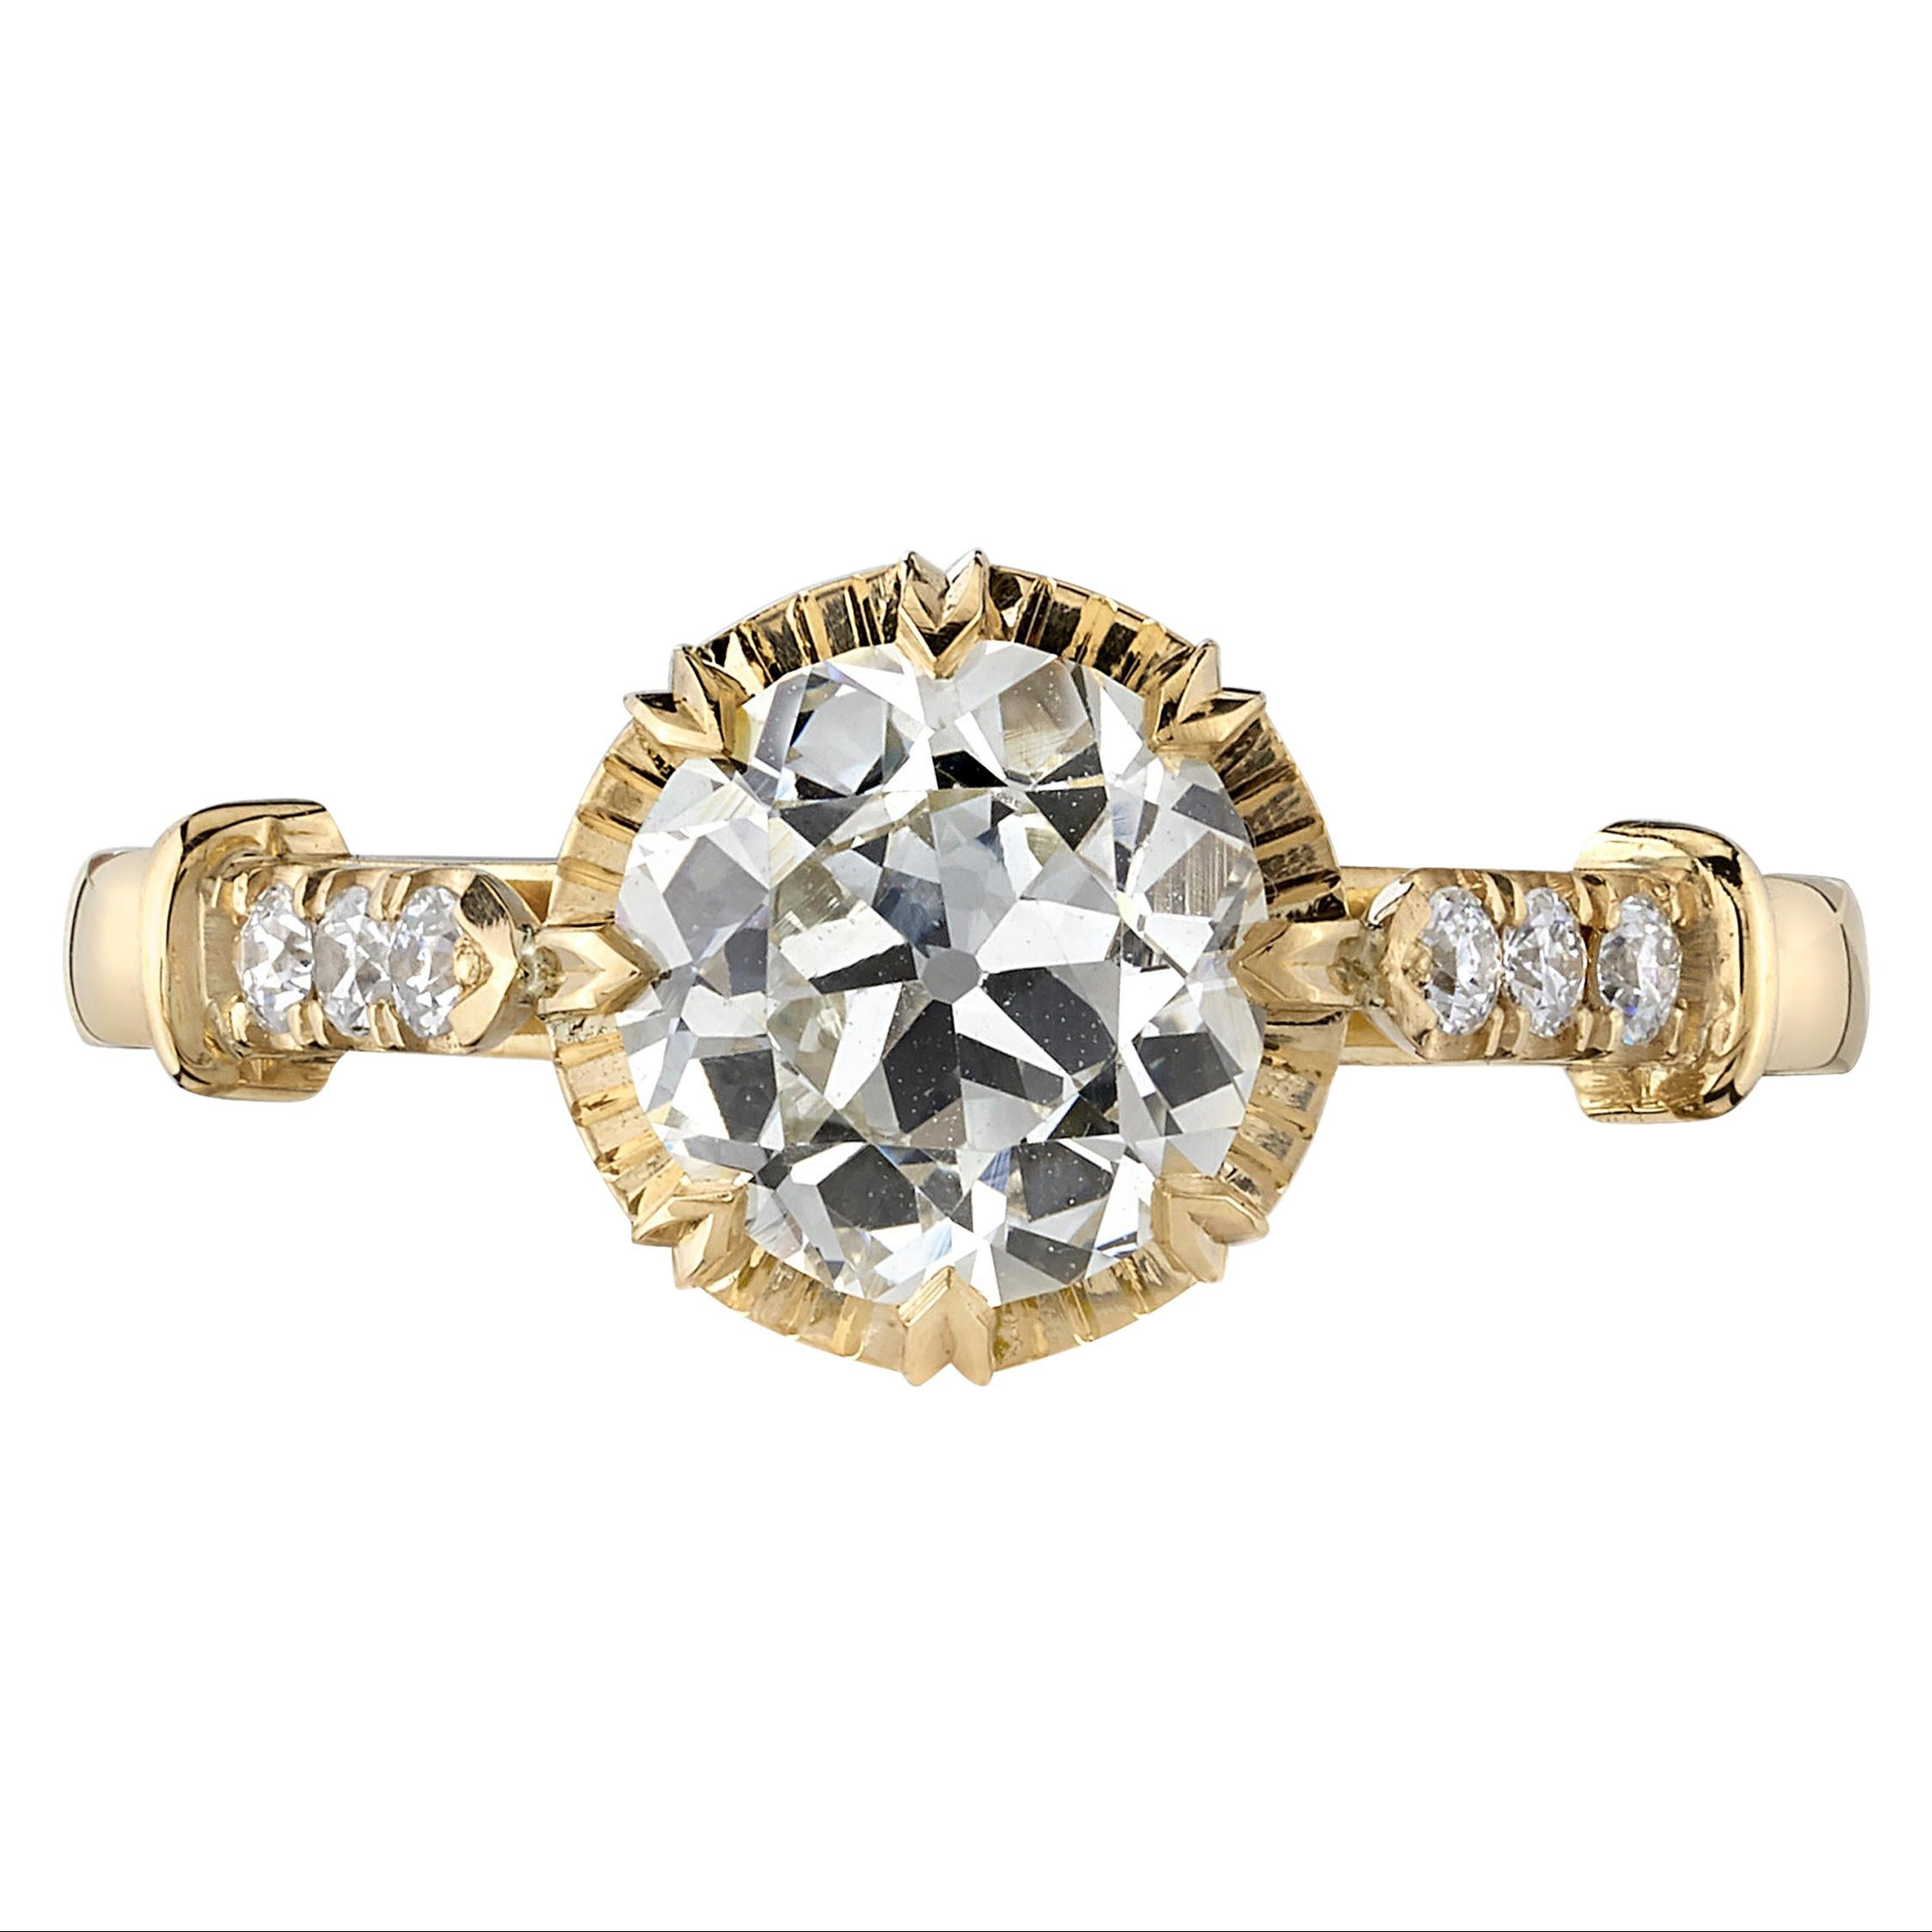 1.40 Carat Old European Cut Diamond Set in a Yellow Gold Engagement Ring